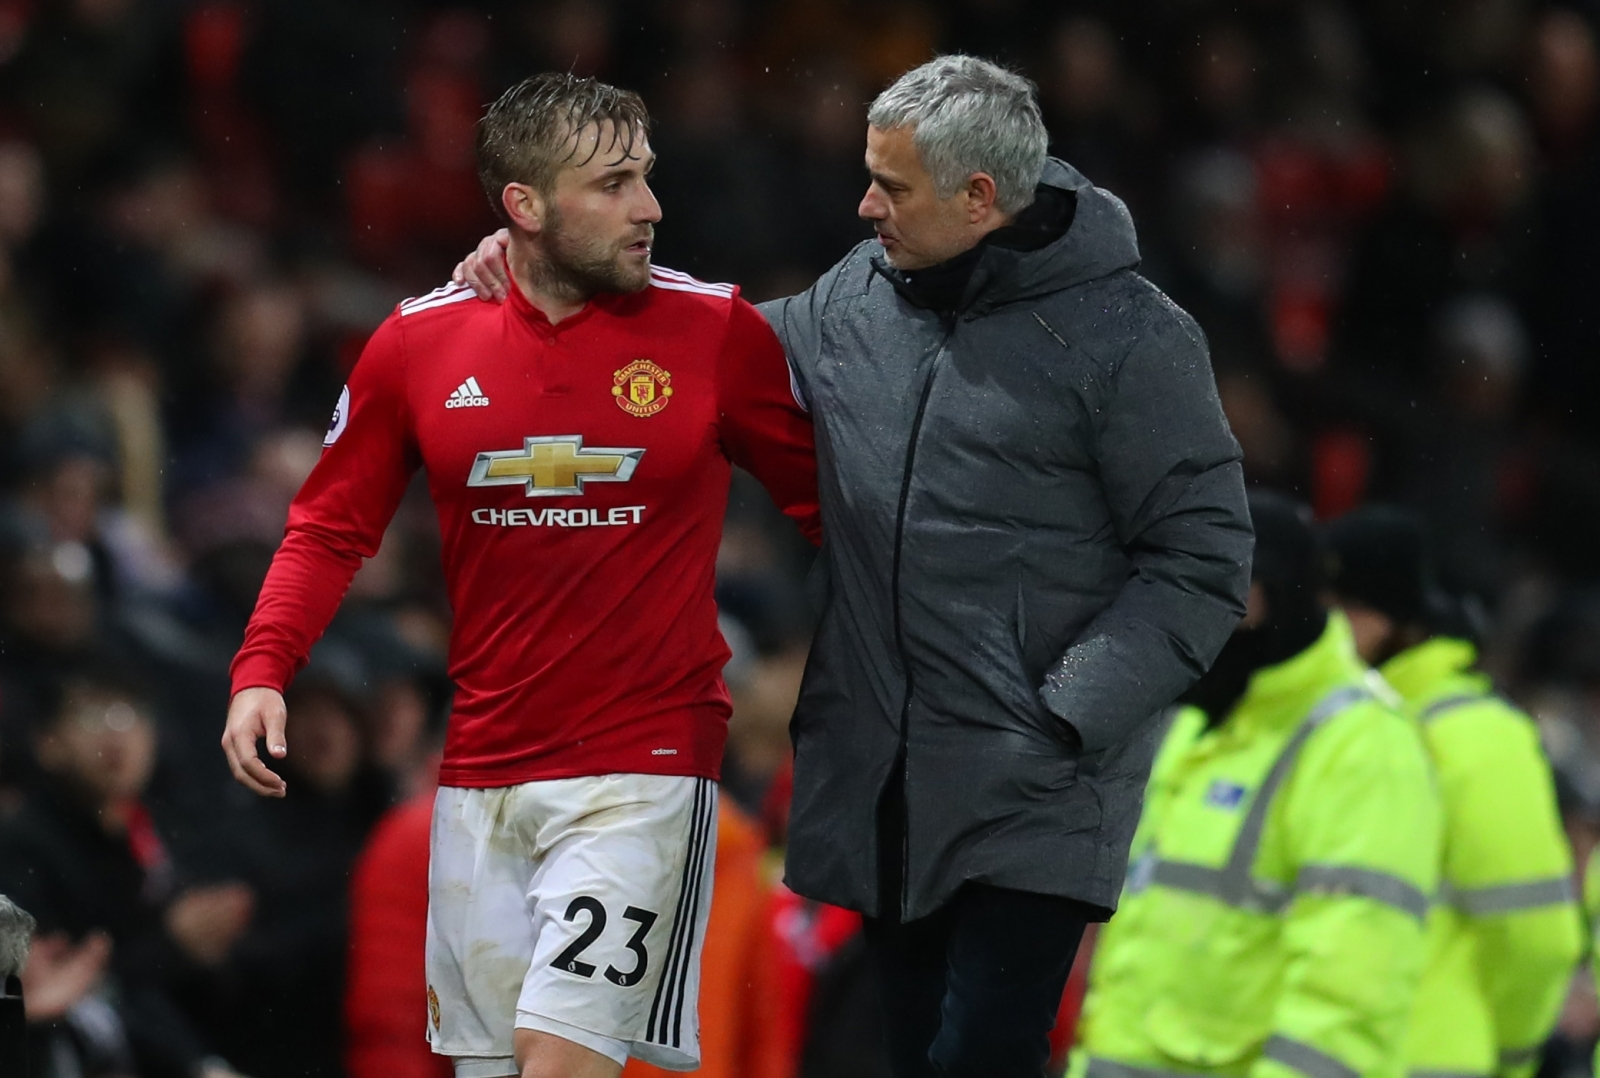 Luke Shaw 'in line for new Manchester United deal'